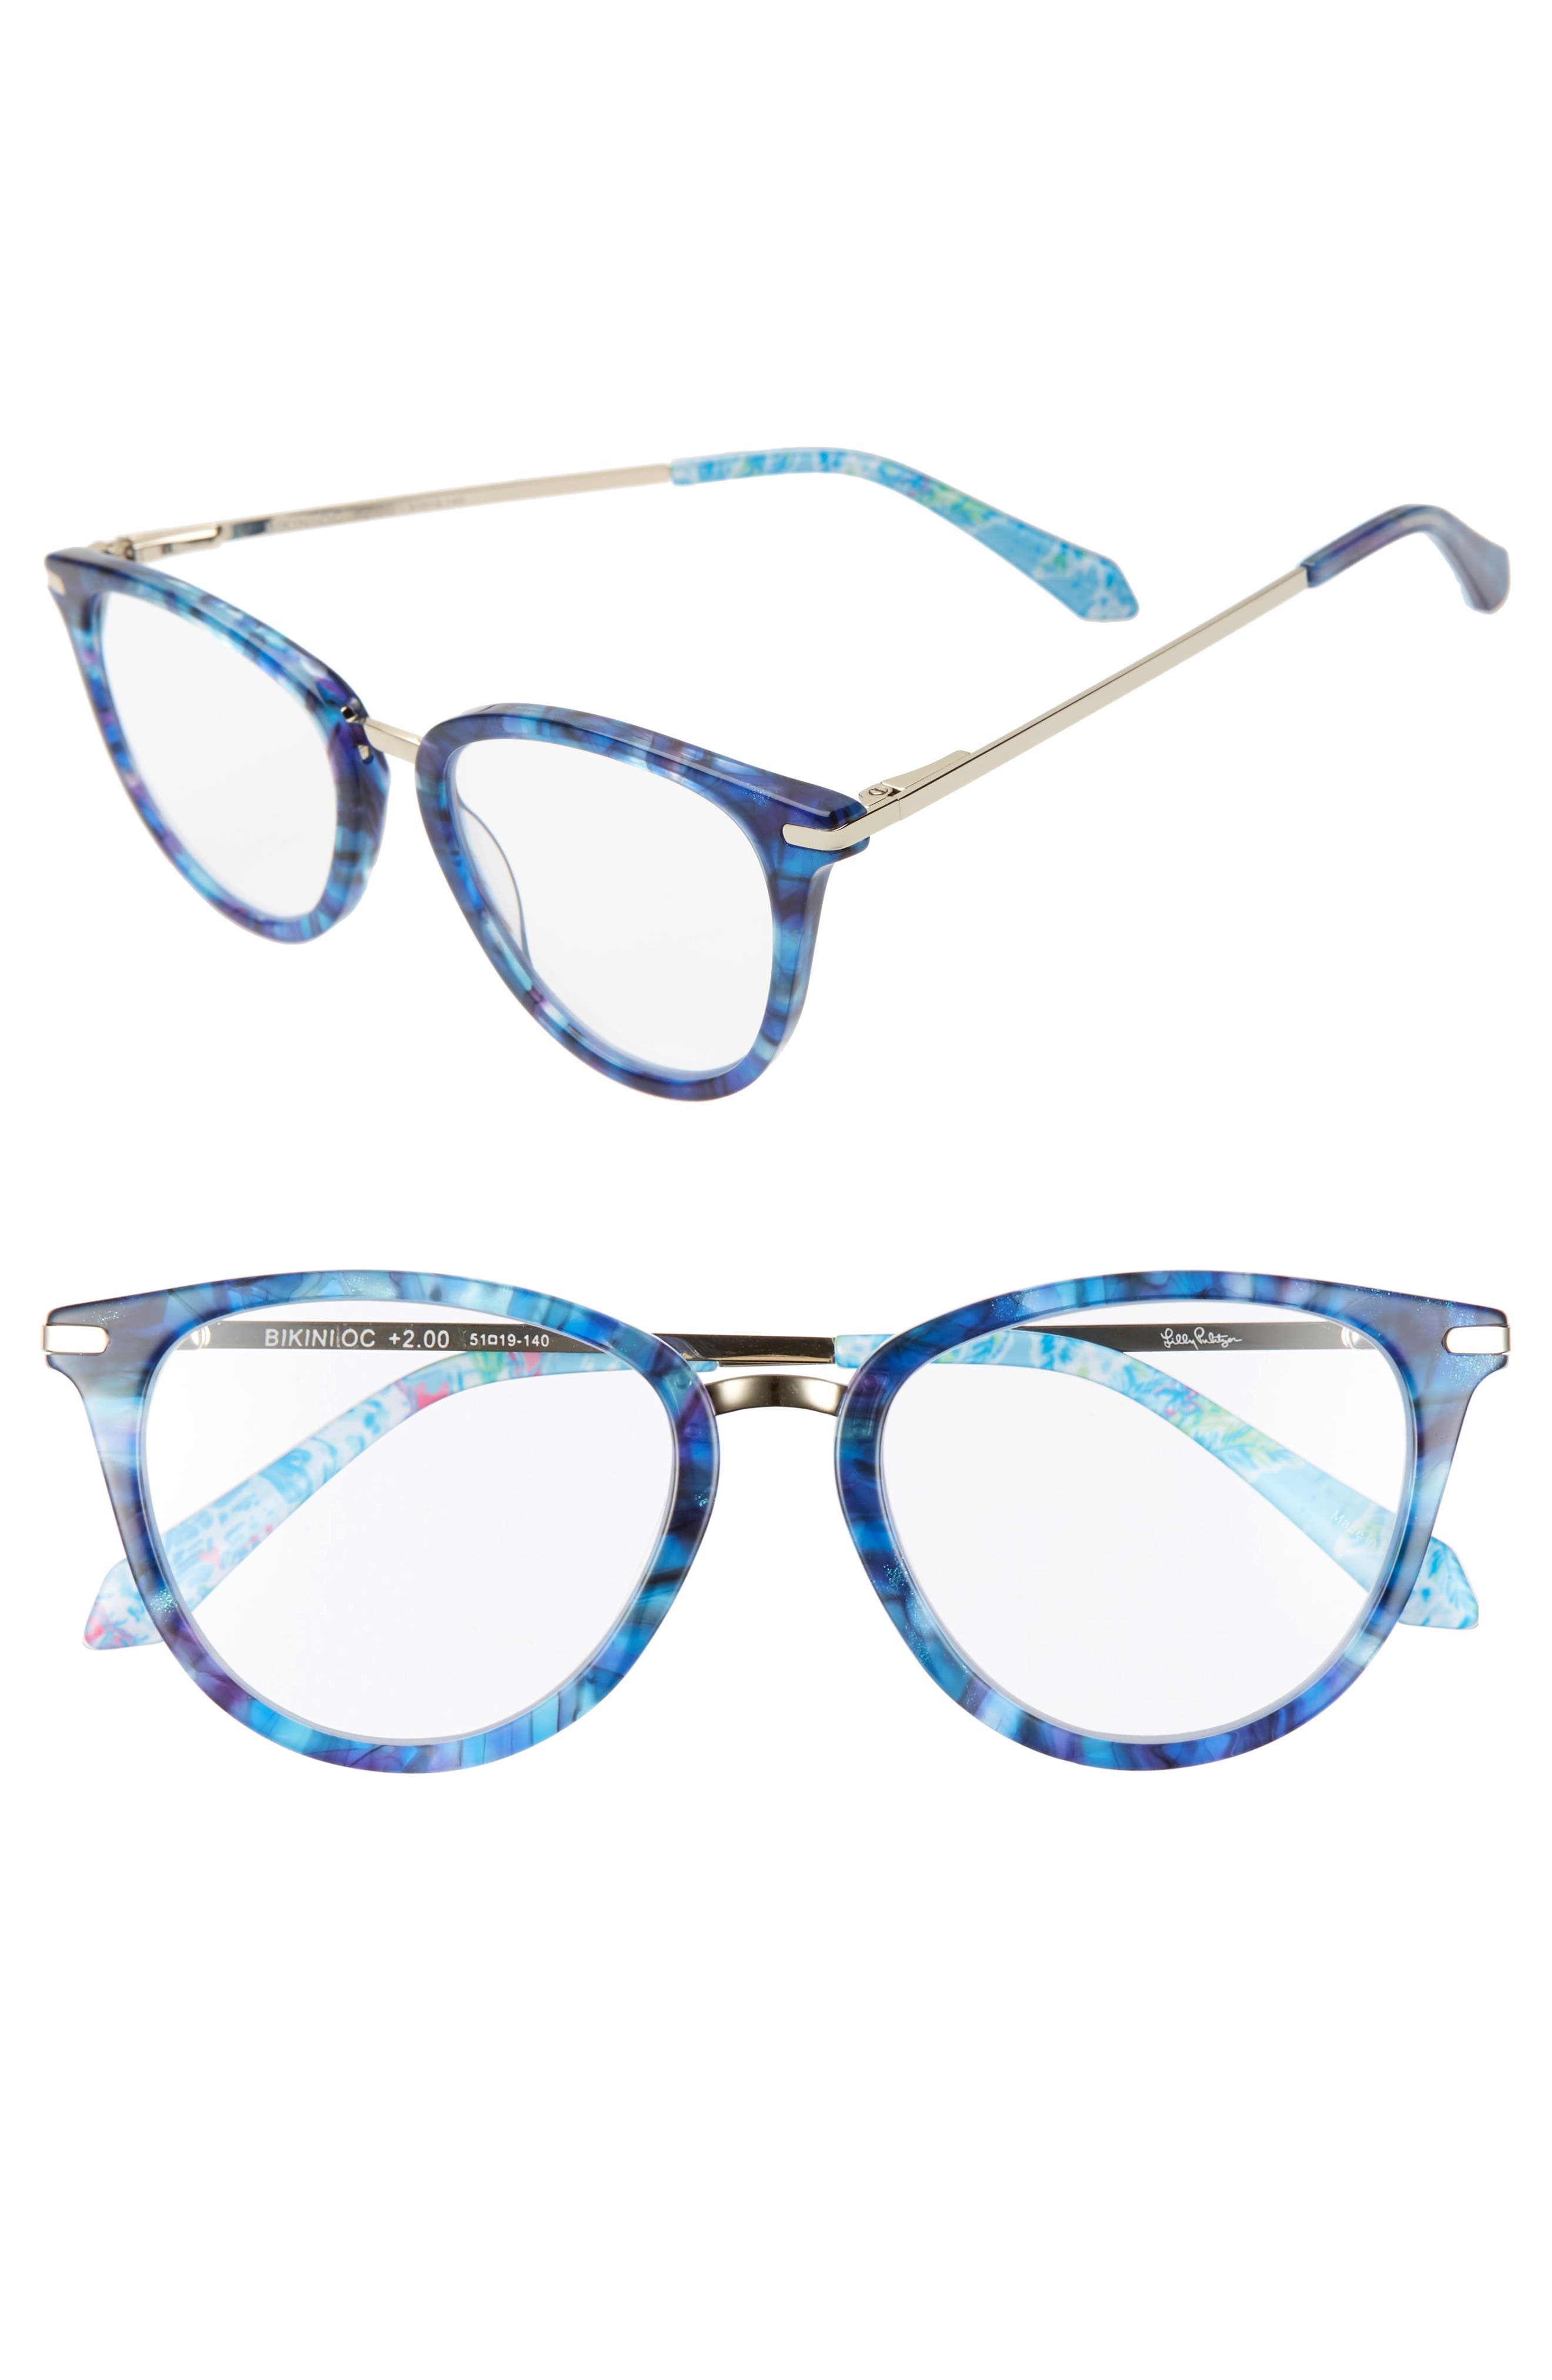 Grab a book and get ready for a day lounging seaside with these reading glasses in a classically chic silhouette. Style Name: Lilly Pulitzer Bakini 51mm Reading Glasses. Style Number: 5984855. Available in stores.